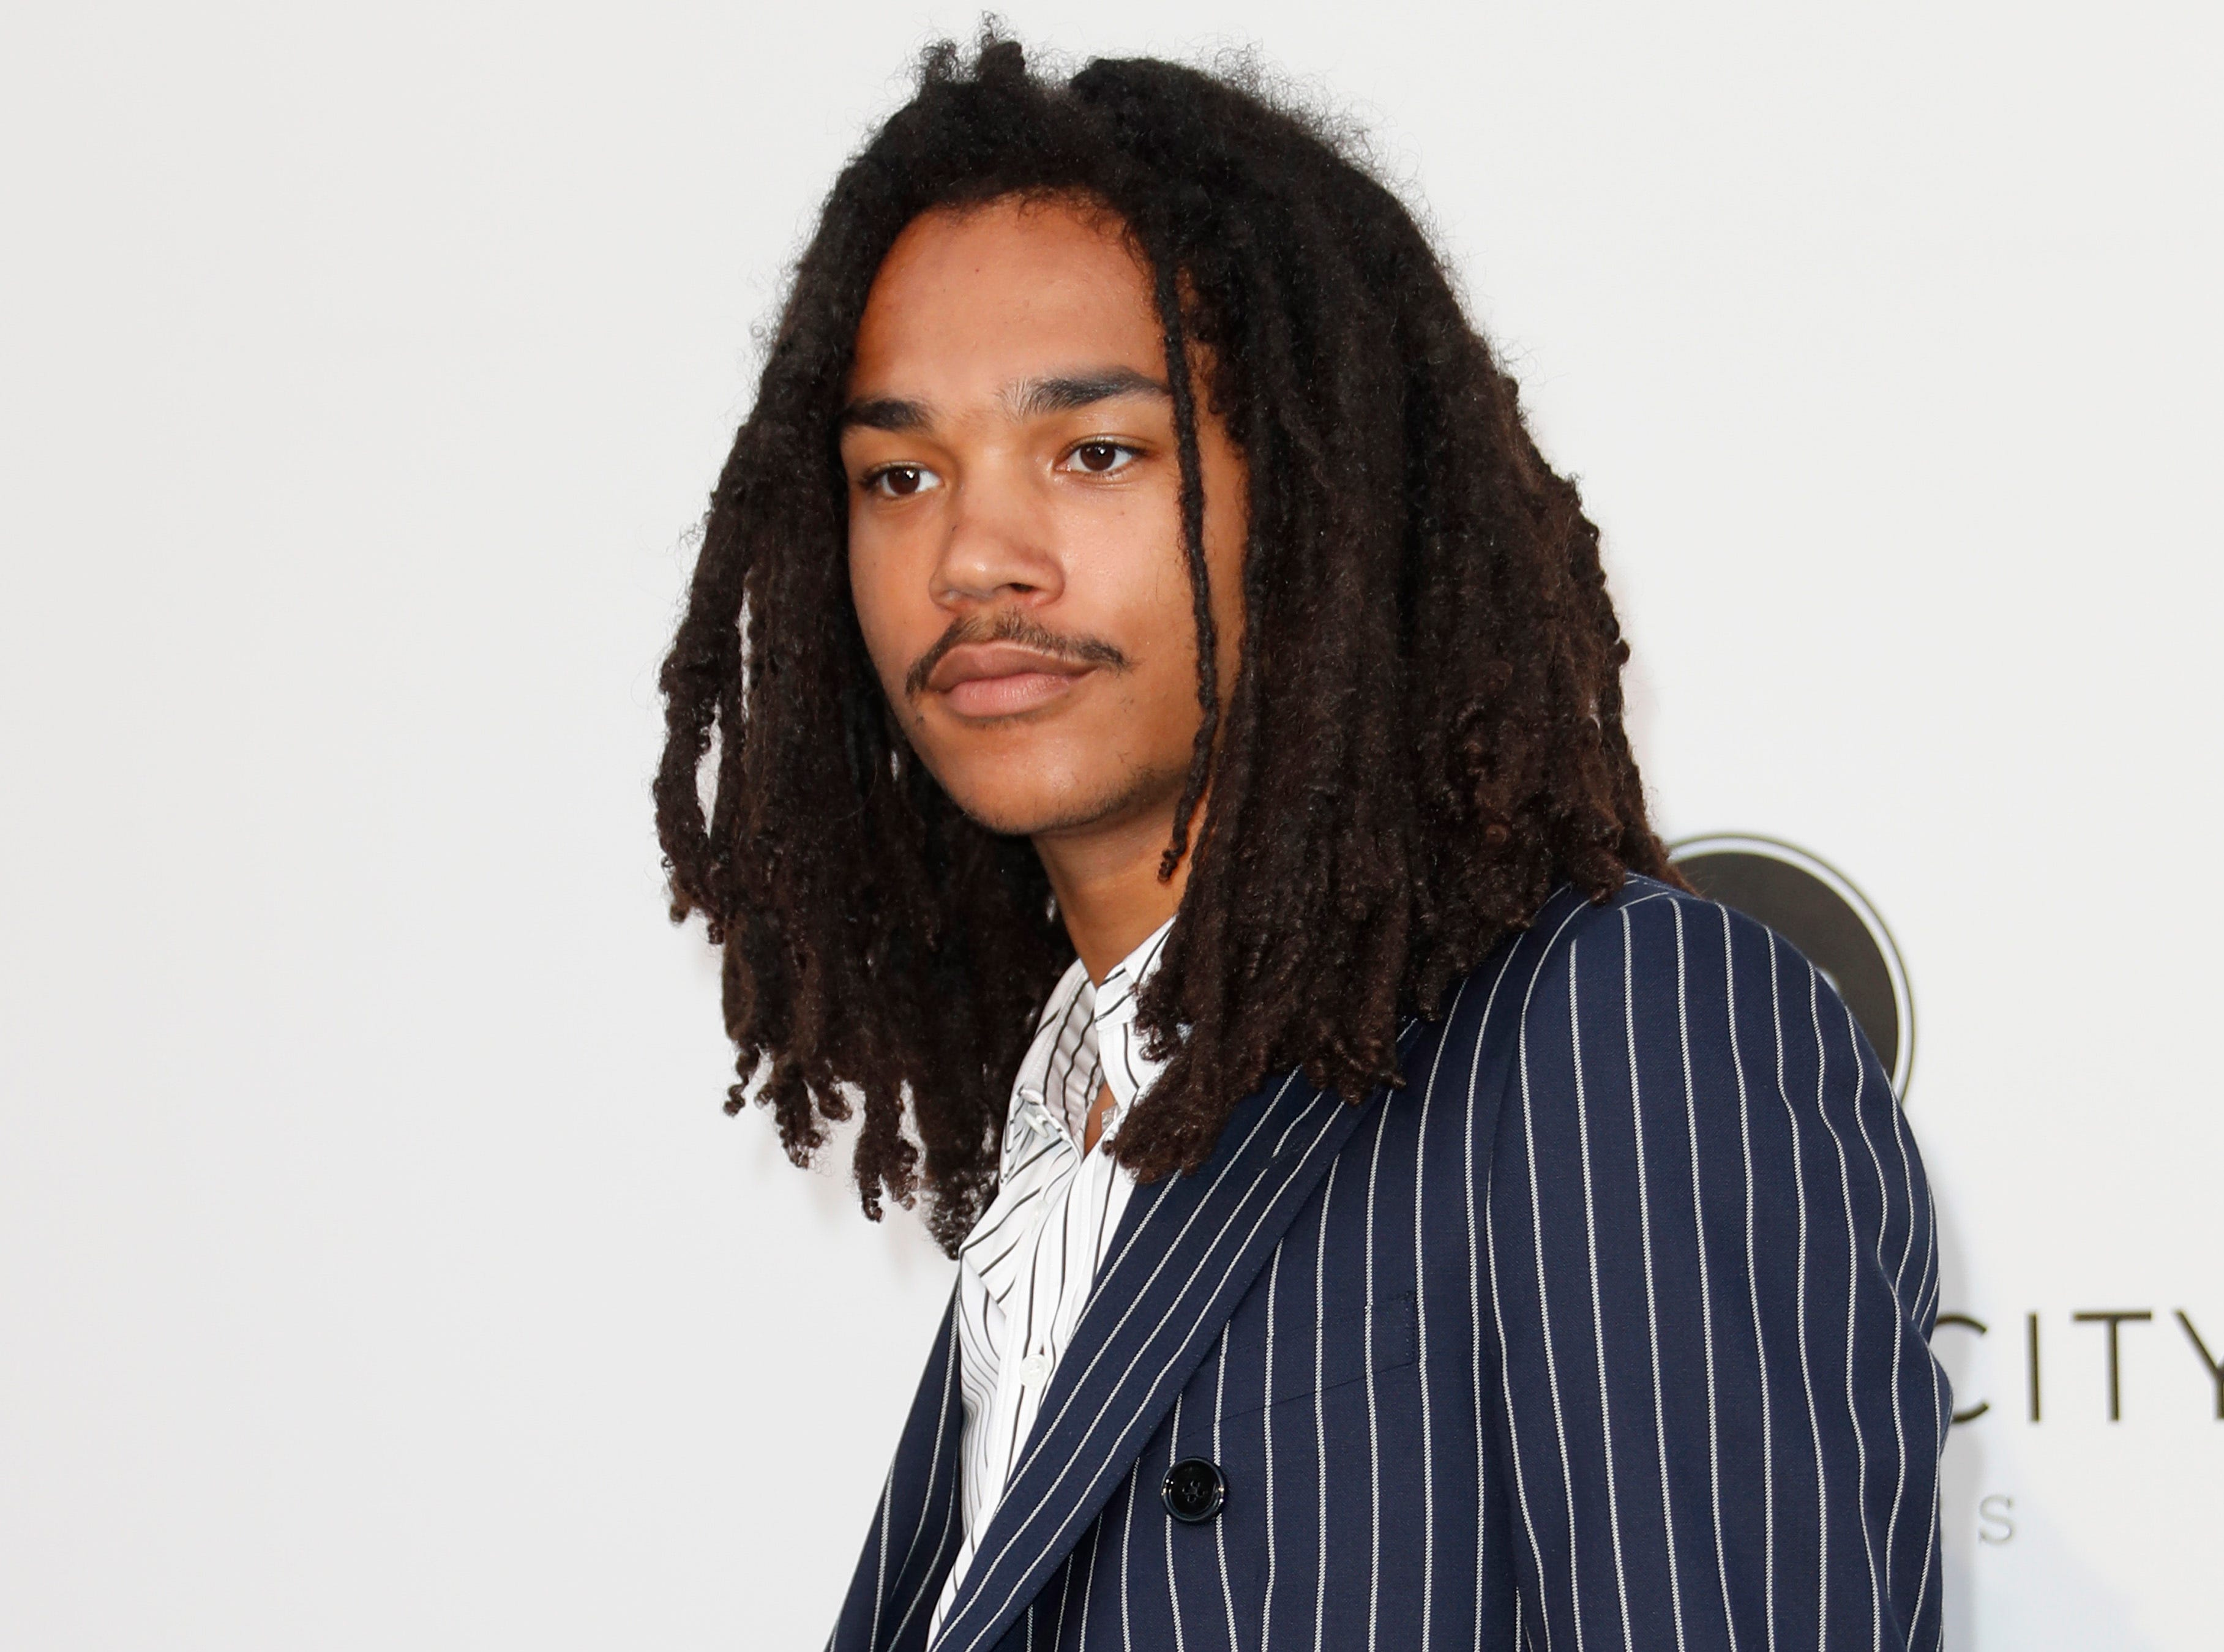 epa07595252 US model Luka Sabbat attends the Cinema Against AIDS amfAR gala 2019 held at the Hotel du Cap, Eden Roc in Cap d'Antibes, France, 23 May 2019, within the scope of the 72nd annual Cannes Film Festival that runs from 14 to 25 May.  EPA-EFE/SEBASTIEN NOGIER